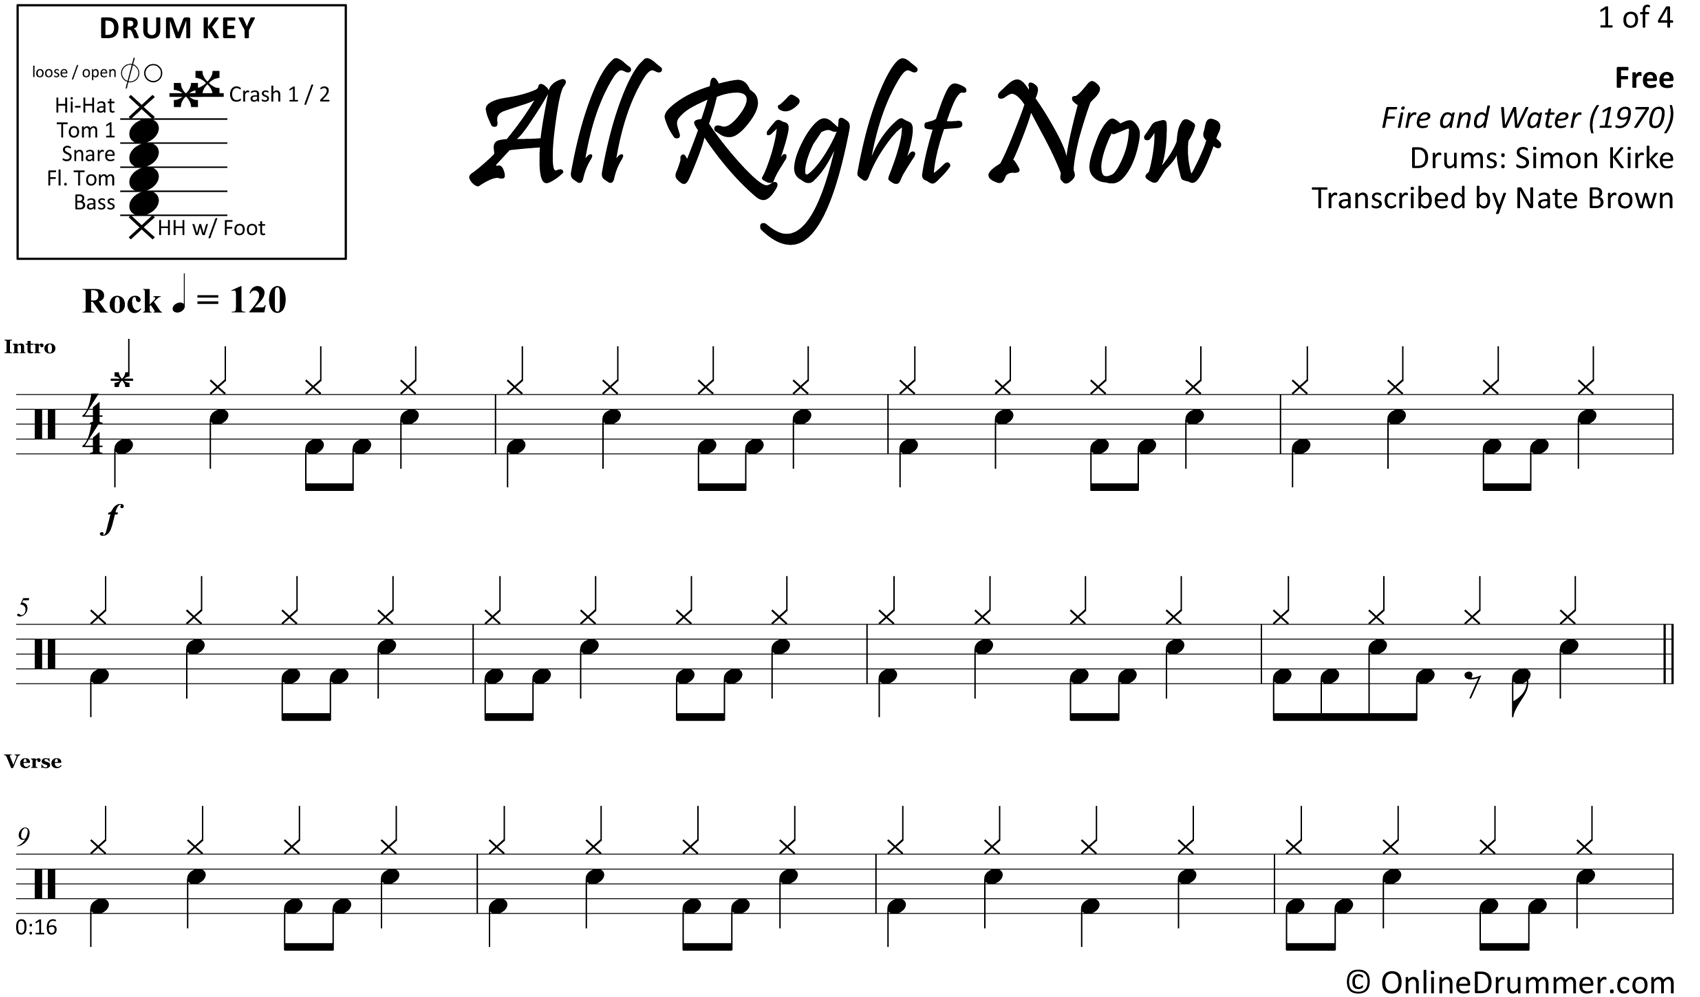 All Right Now - Free - Drum Sheet Music